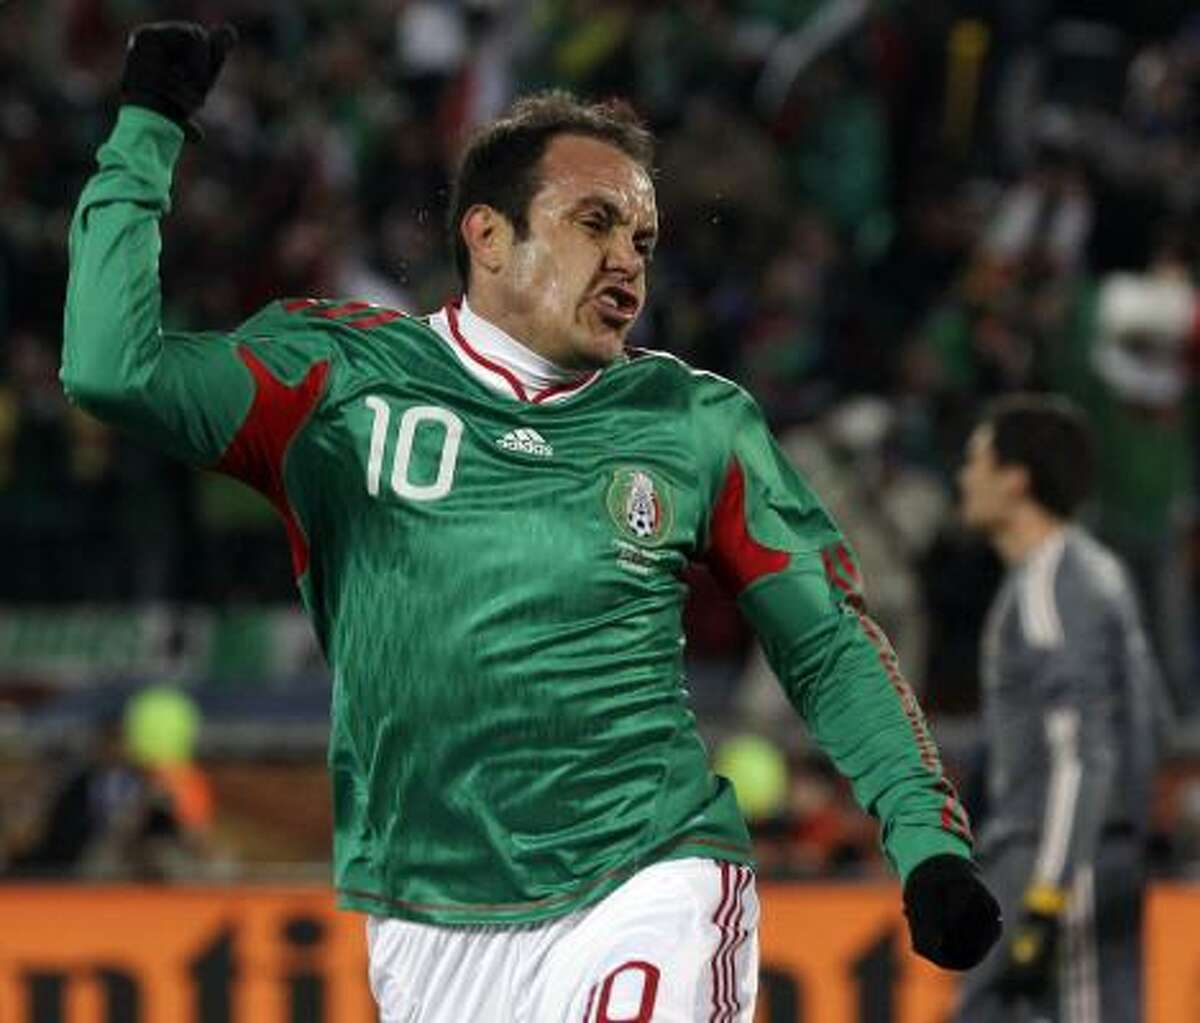 MEXICO 2, FRANCE 0 Mexico's Cuauhtemoc Blanco celebrates after scoring on a penalty kick for the second goal of the match at Peter Mokaba Stadium in Polokwane.